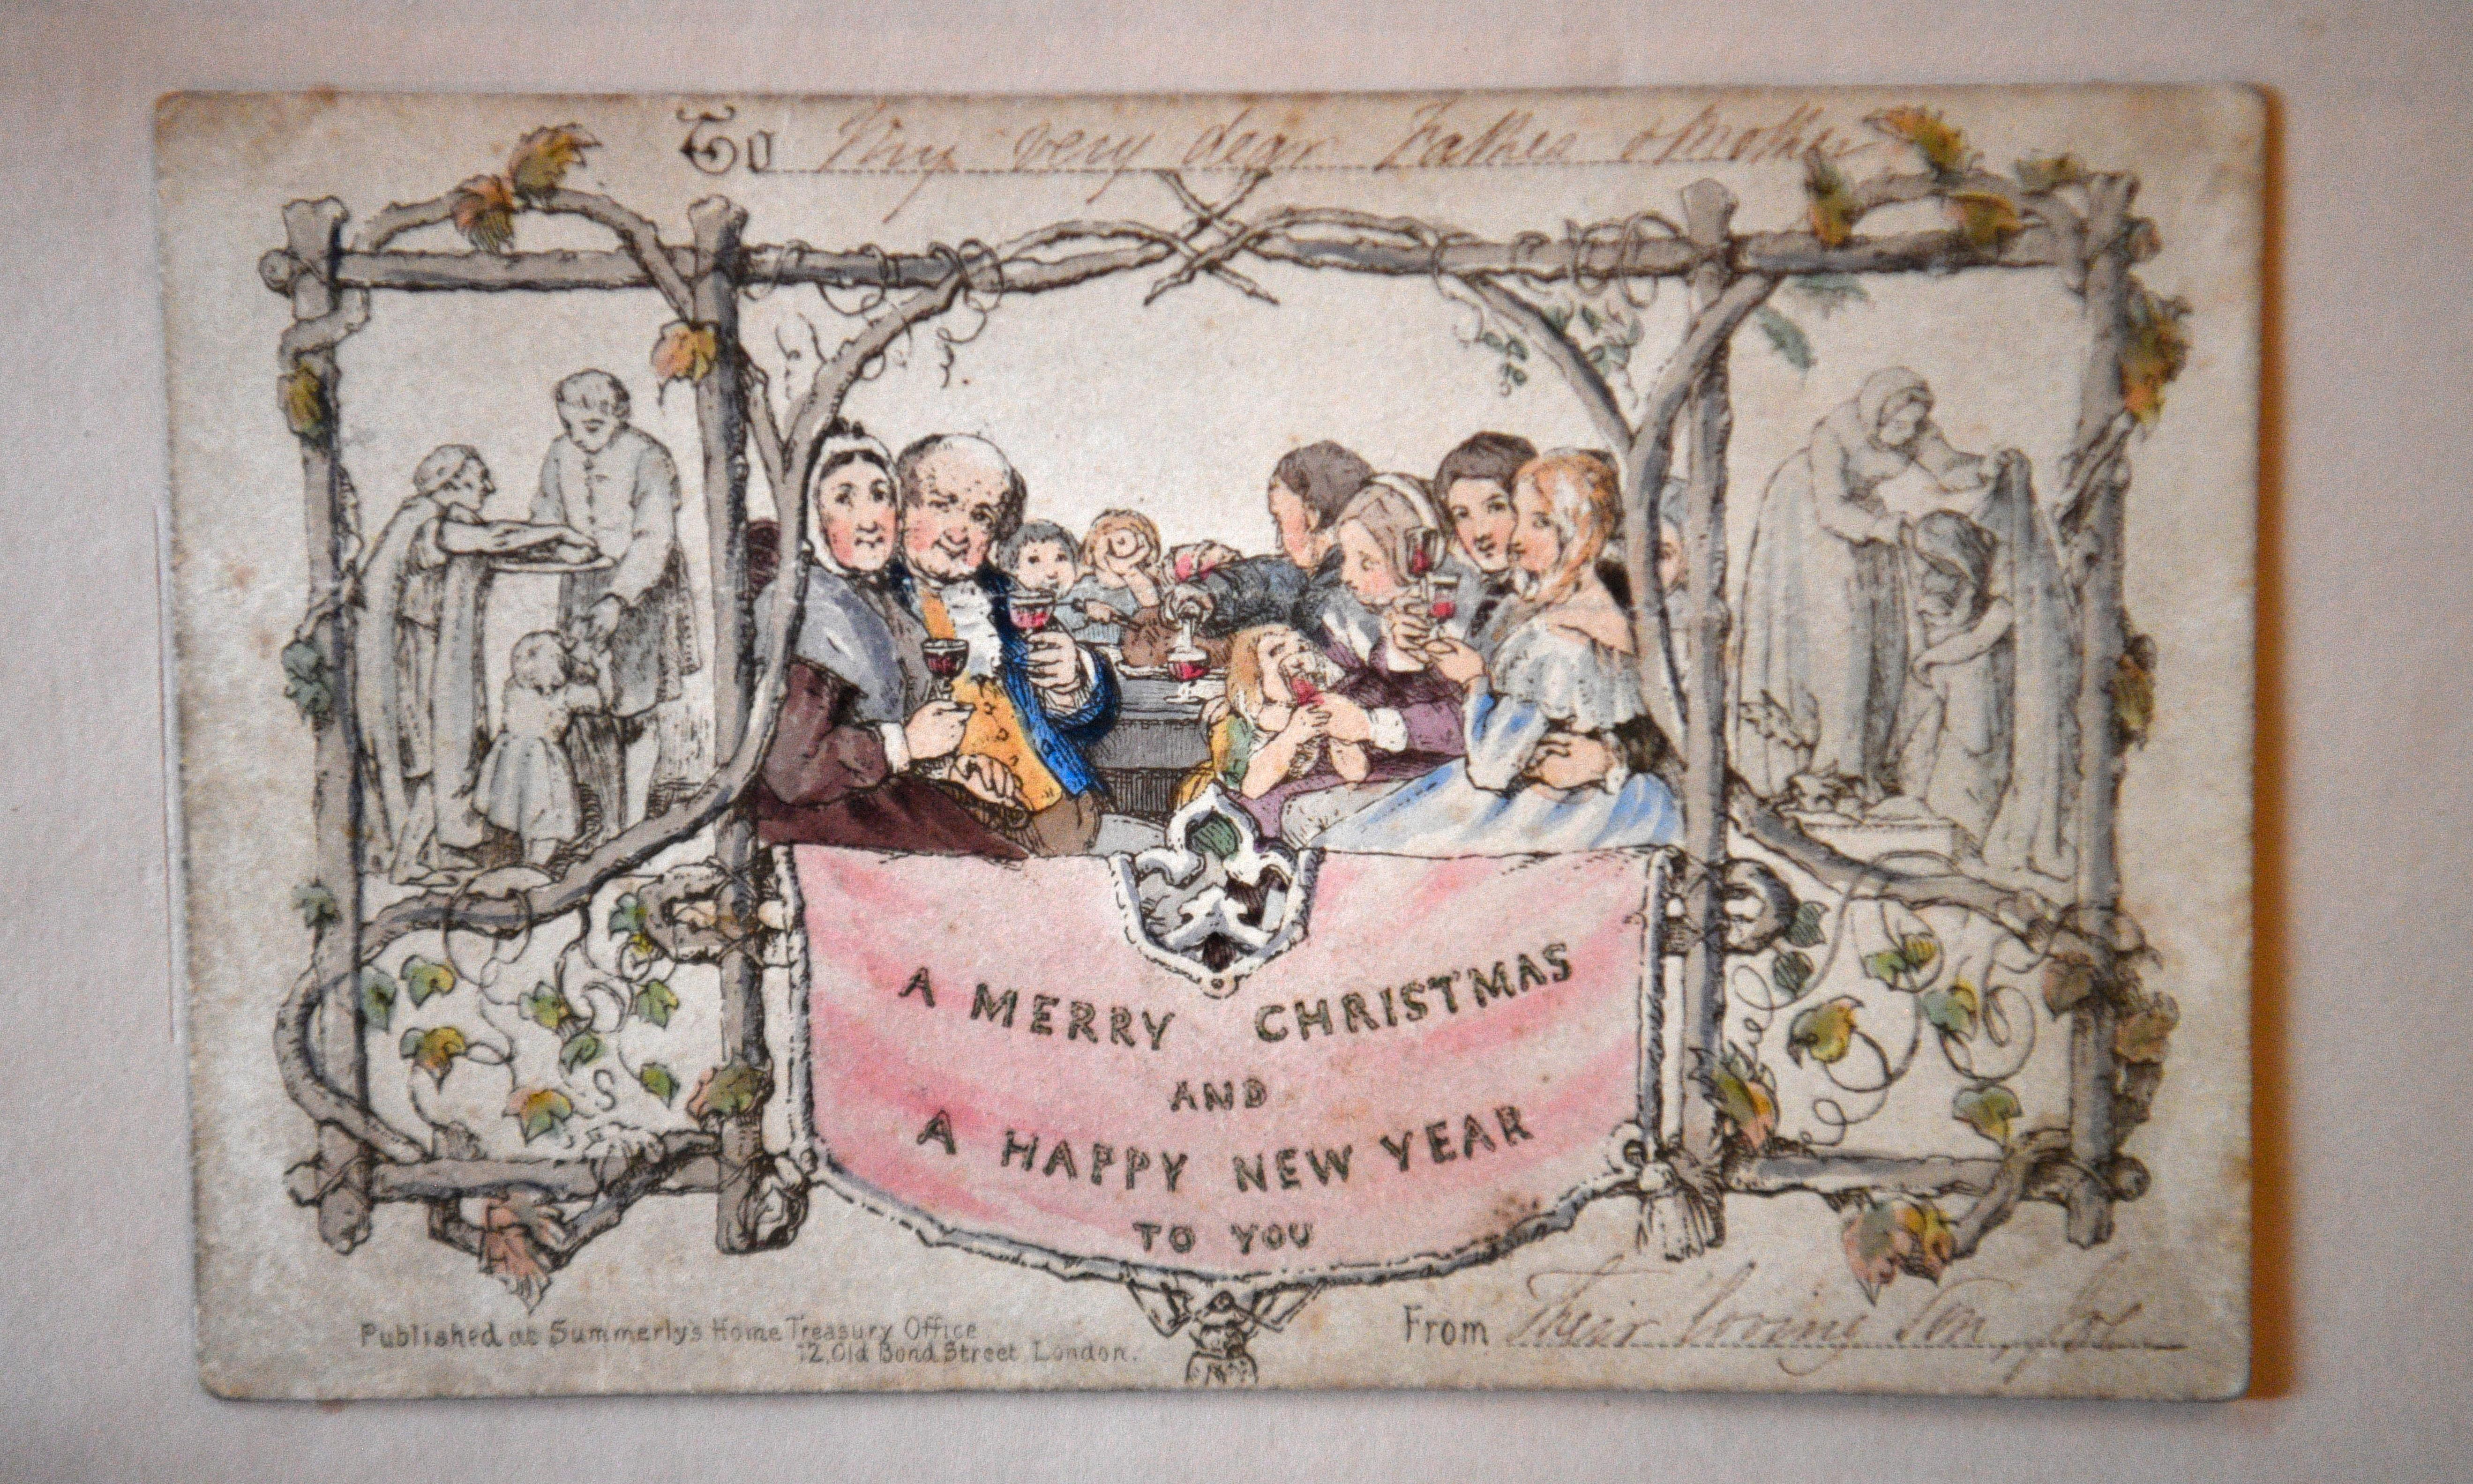 World's first printed Christmas card goes on display at Dickens museum